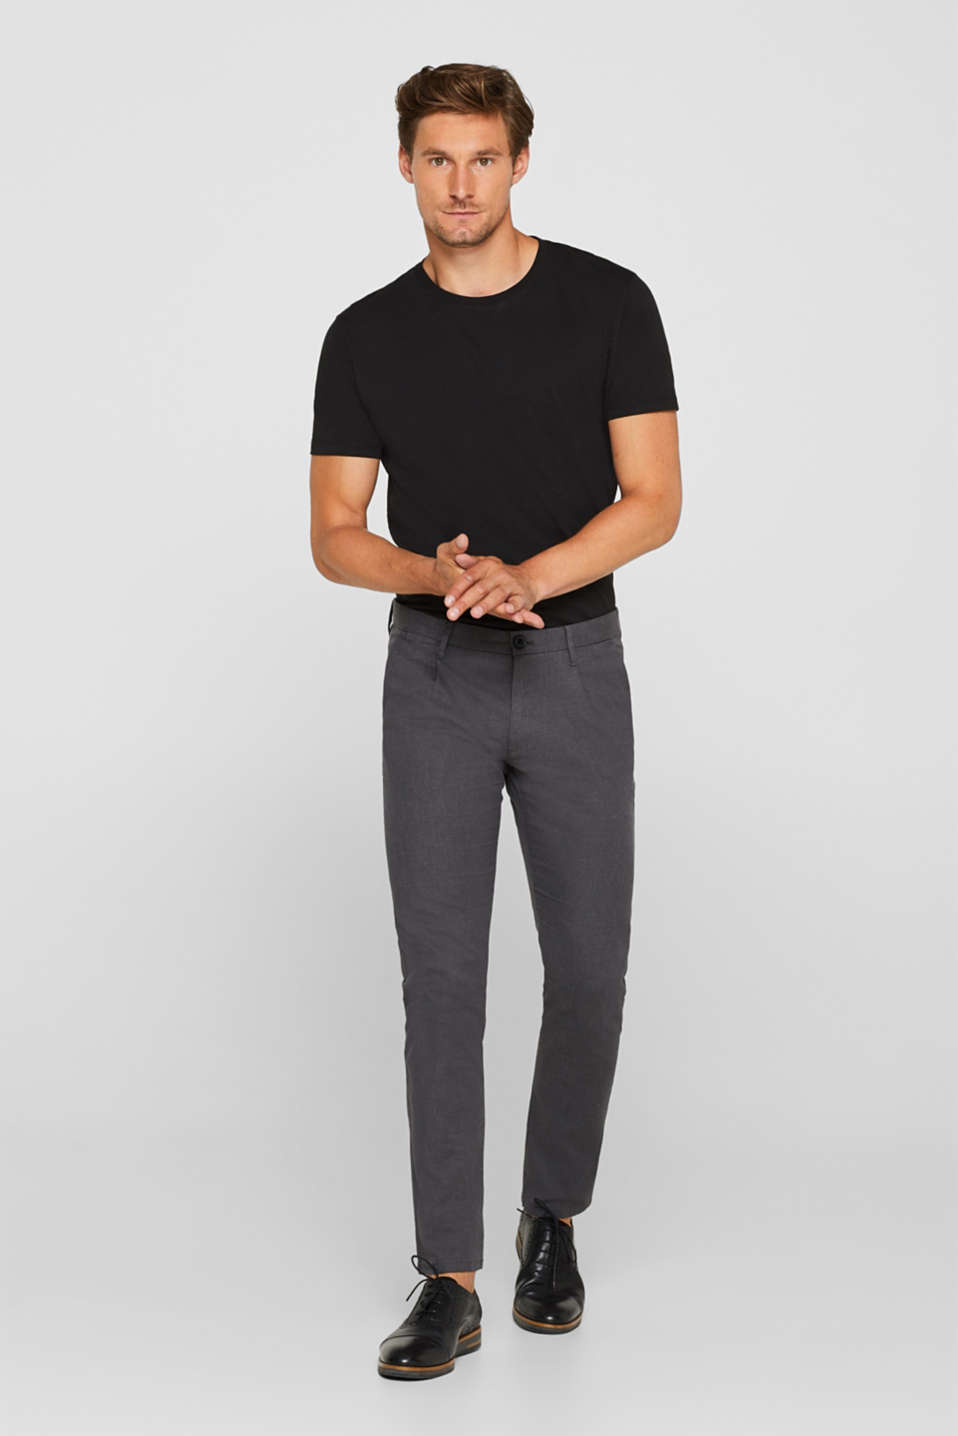 Pants woven Slim fit, ANTHRACITE, detail image number 1